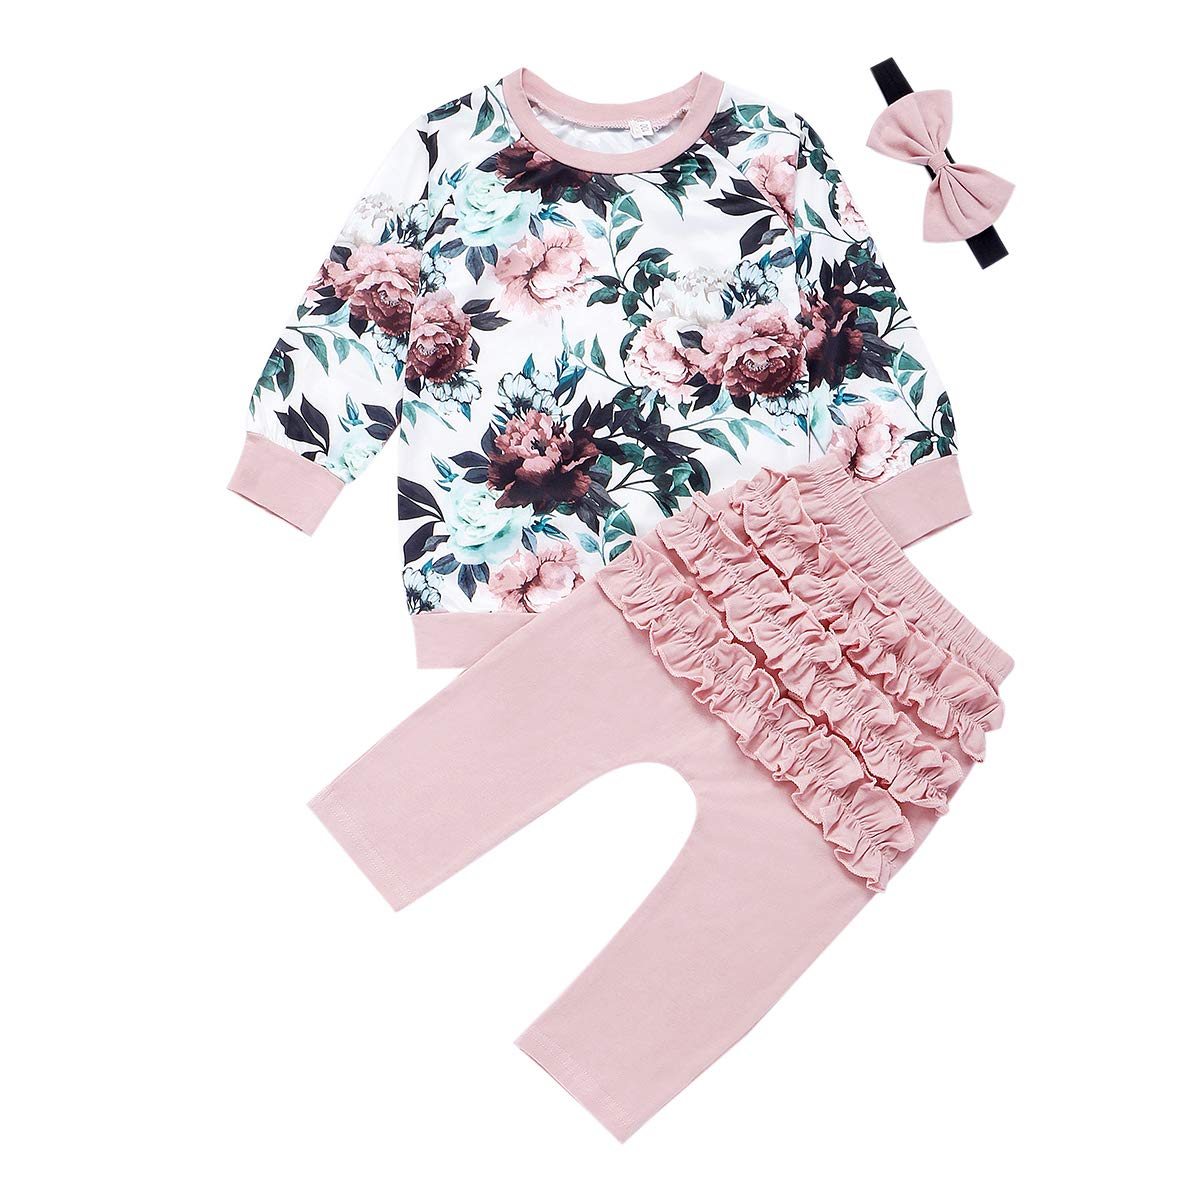 vpuquuz Toddler Baby Girl Clothes Floral Ruffle T-Shirt Long Sleeve Sweatshirt Tops Trouser Pants Headband 3Pcs Fall Winter Outfits Set